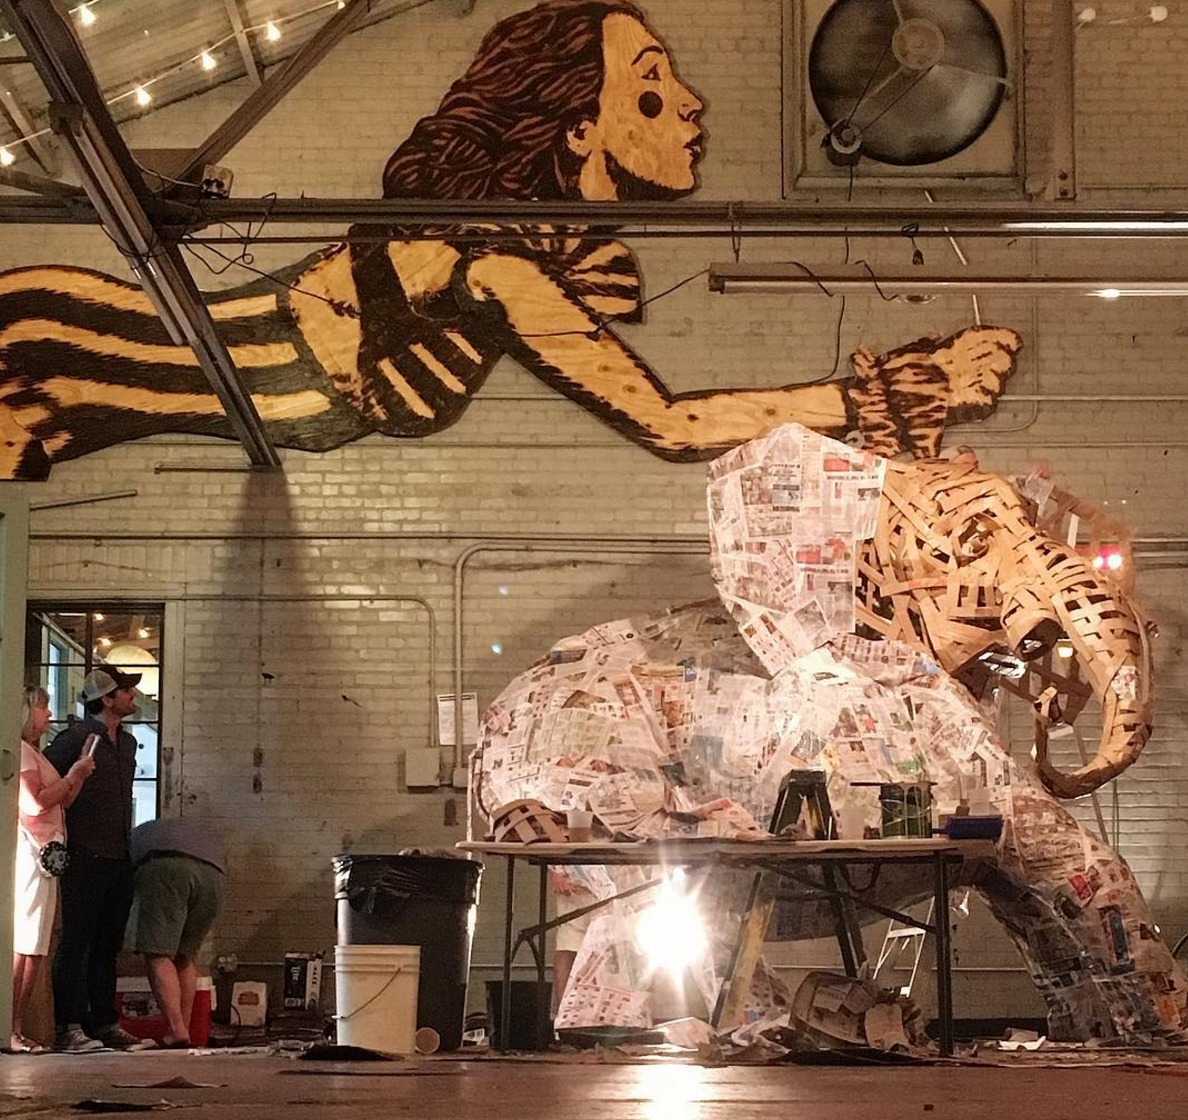 The Art Garage on St. Claude, a new concept from the Frenchmen Art Market. (Photo via @clarkerieke on Instagram)